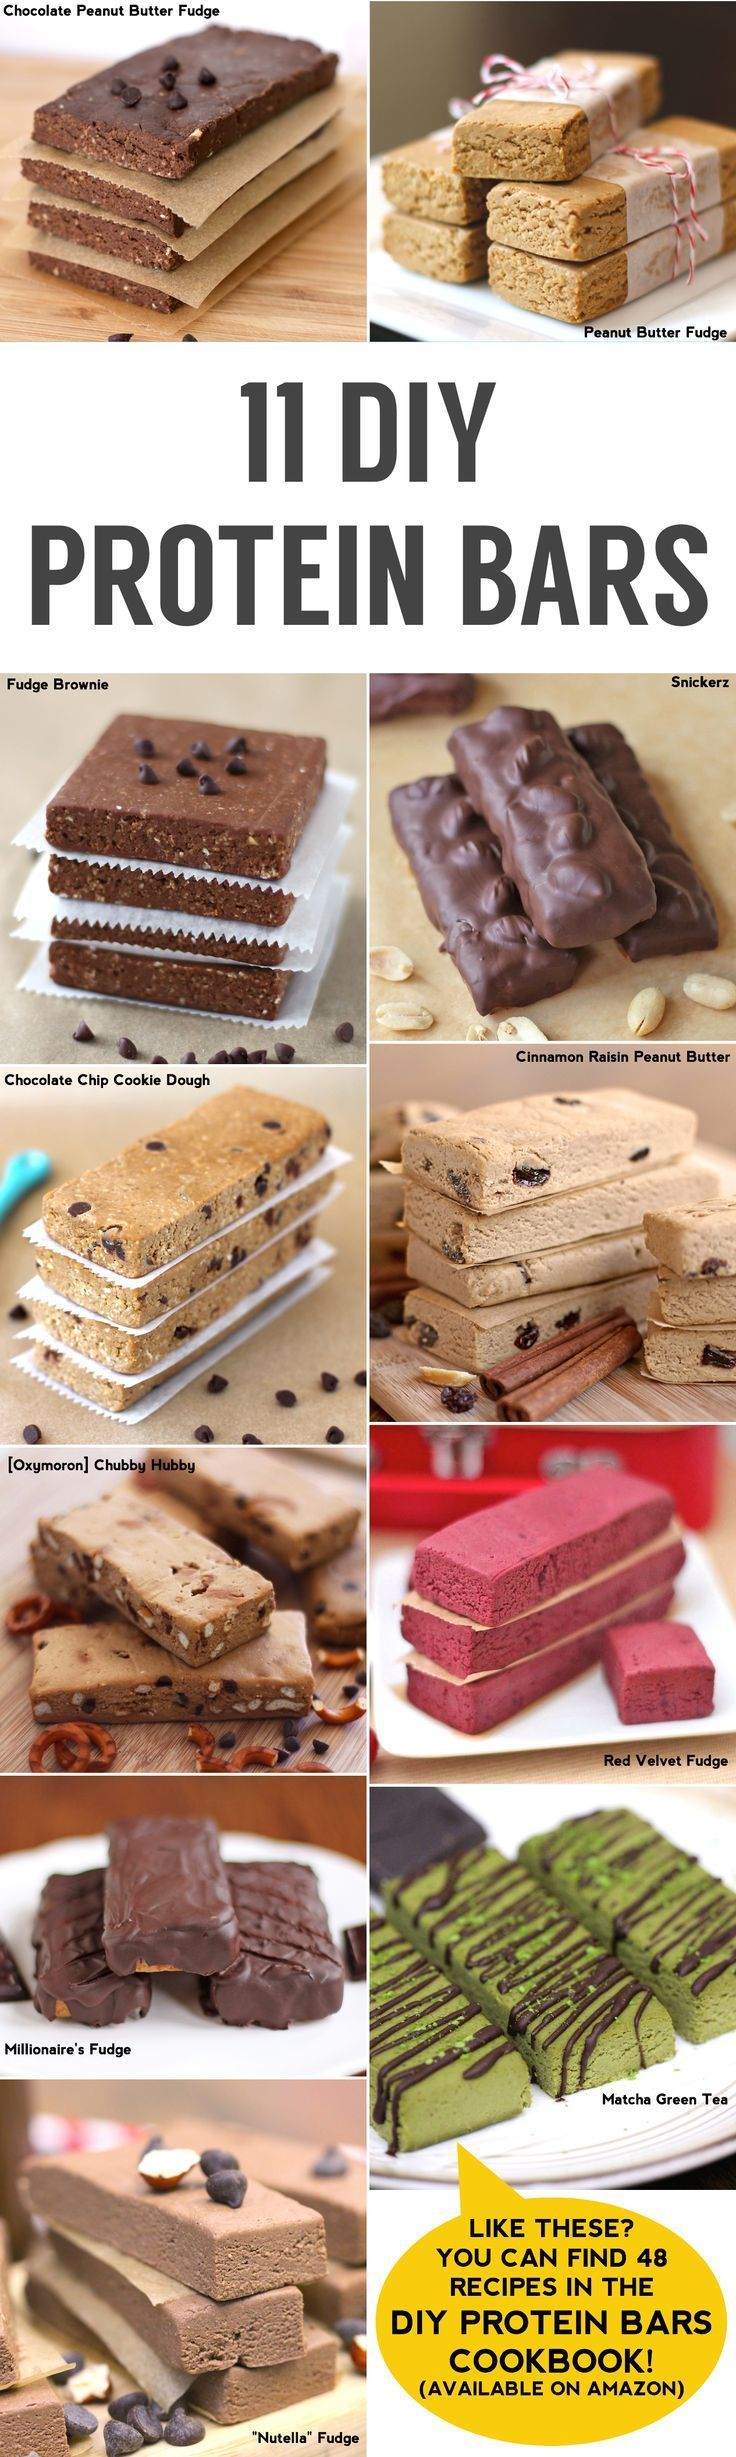 See more here ► https://www.youtube.com/watch?v=-pwmXYq0RQk Tags: best way to lose weight after having a baby, best ways to lose weight fast, best ways to lose baby weight - DIY Protein Bars Cookbook – Jessica Stier of Desserts with Benefits (Haven't read the recipes but want them and will tweak for low carb as needed.) #exercise #diet #workout #fitness #health